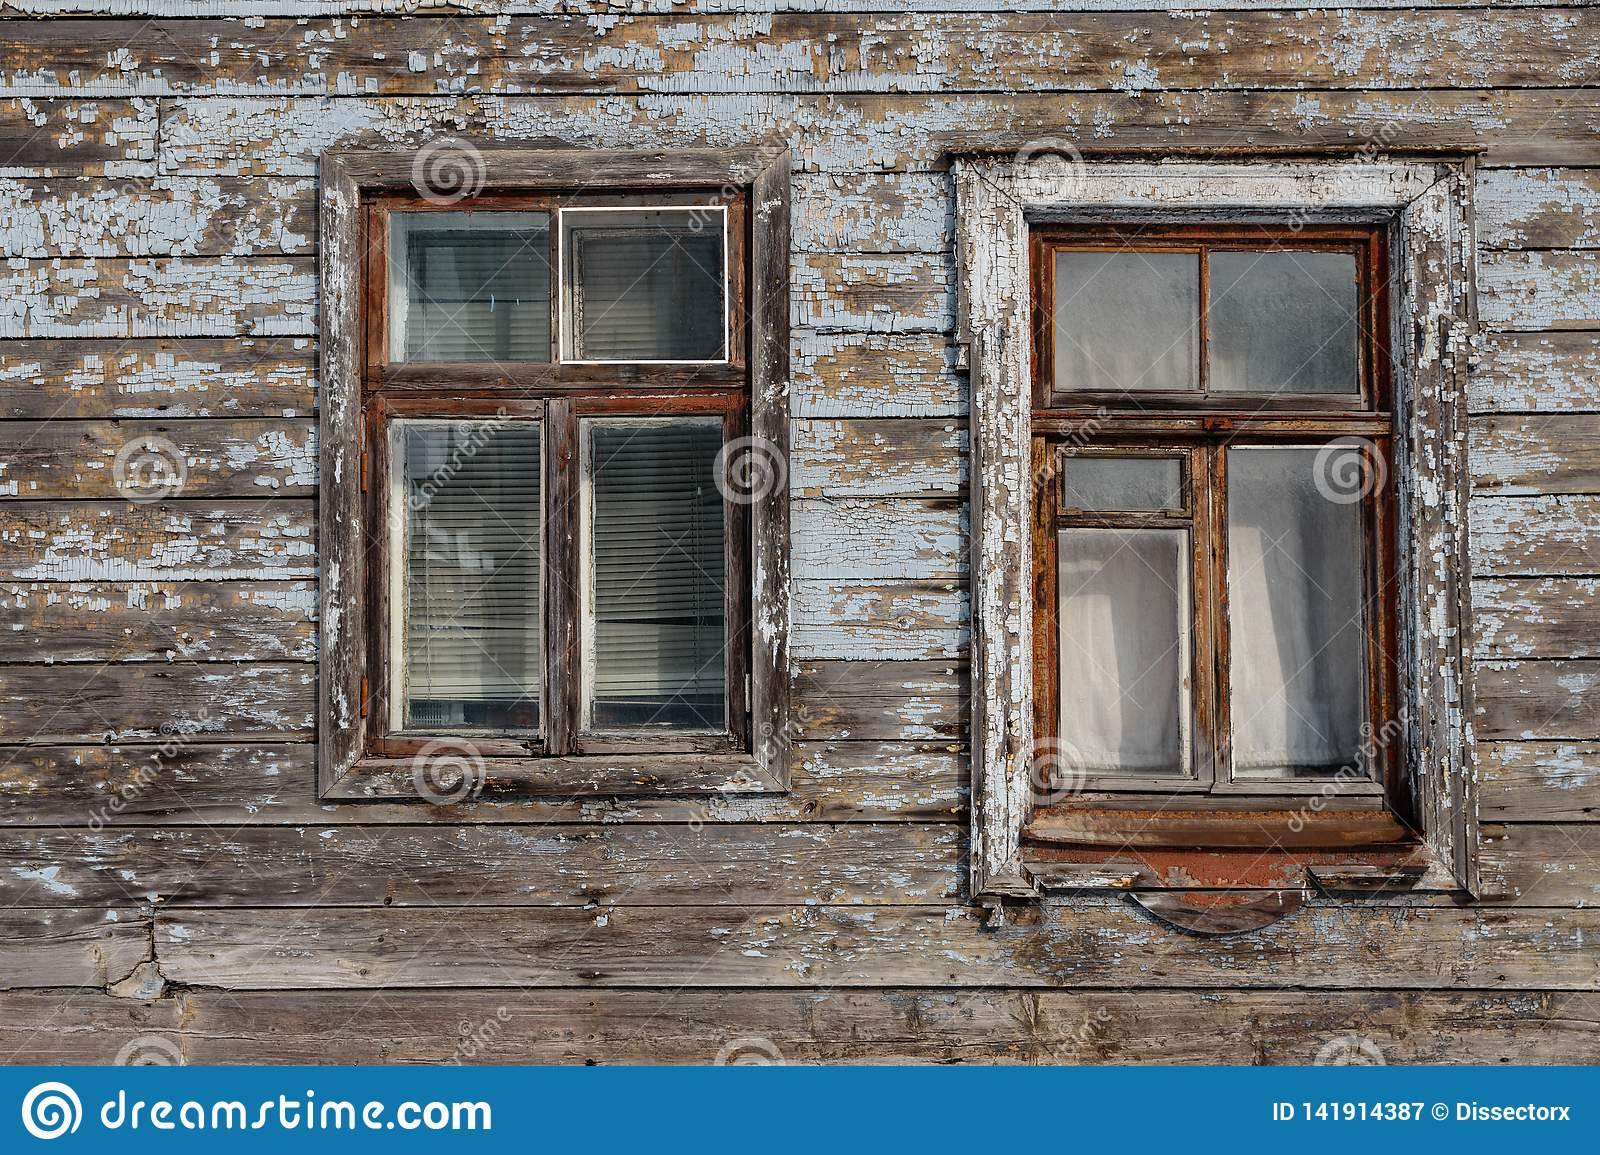 Old wooden window closeup at a house in Riga, Latvia